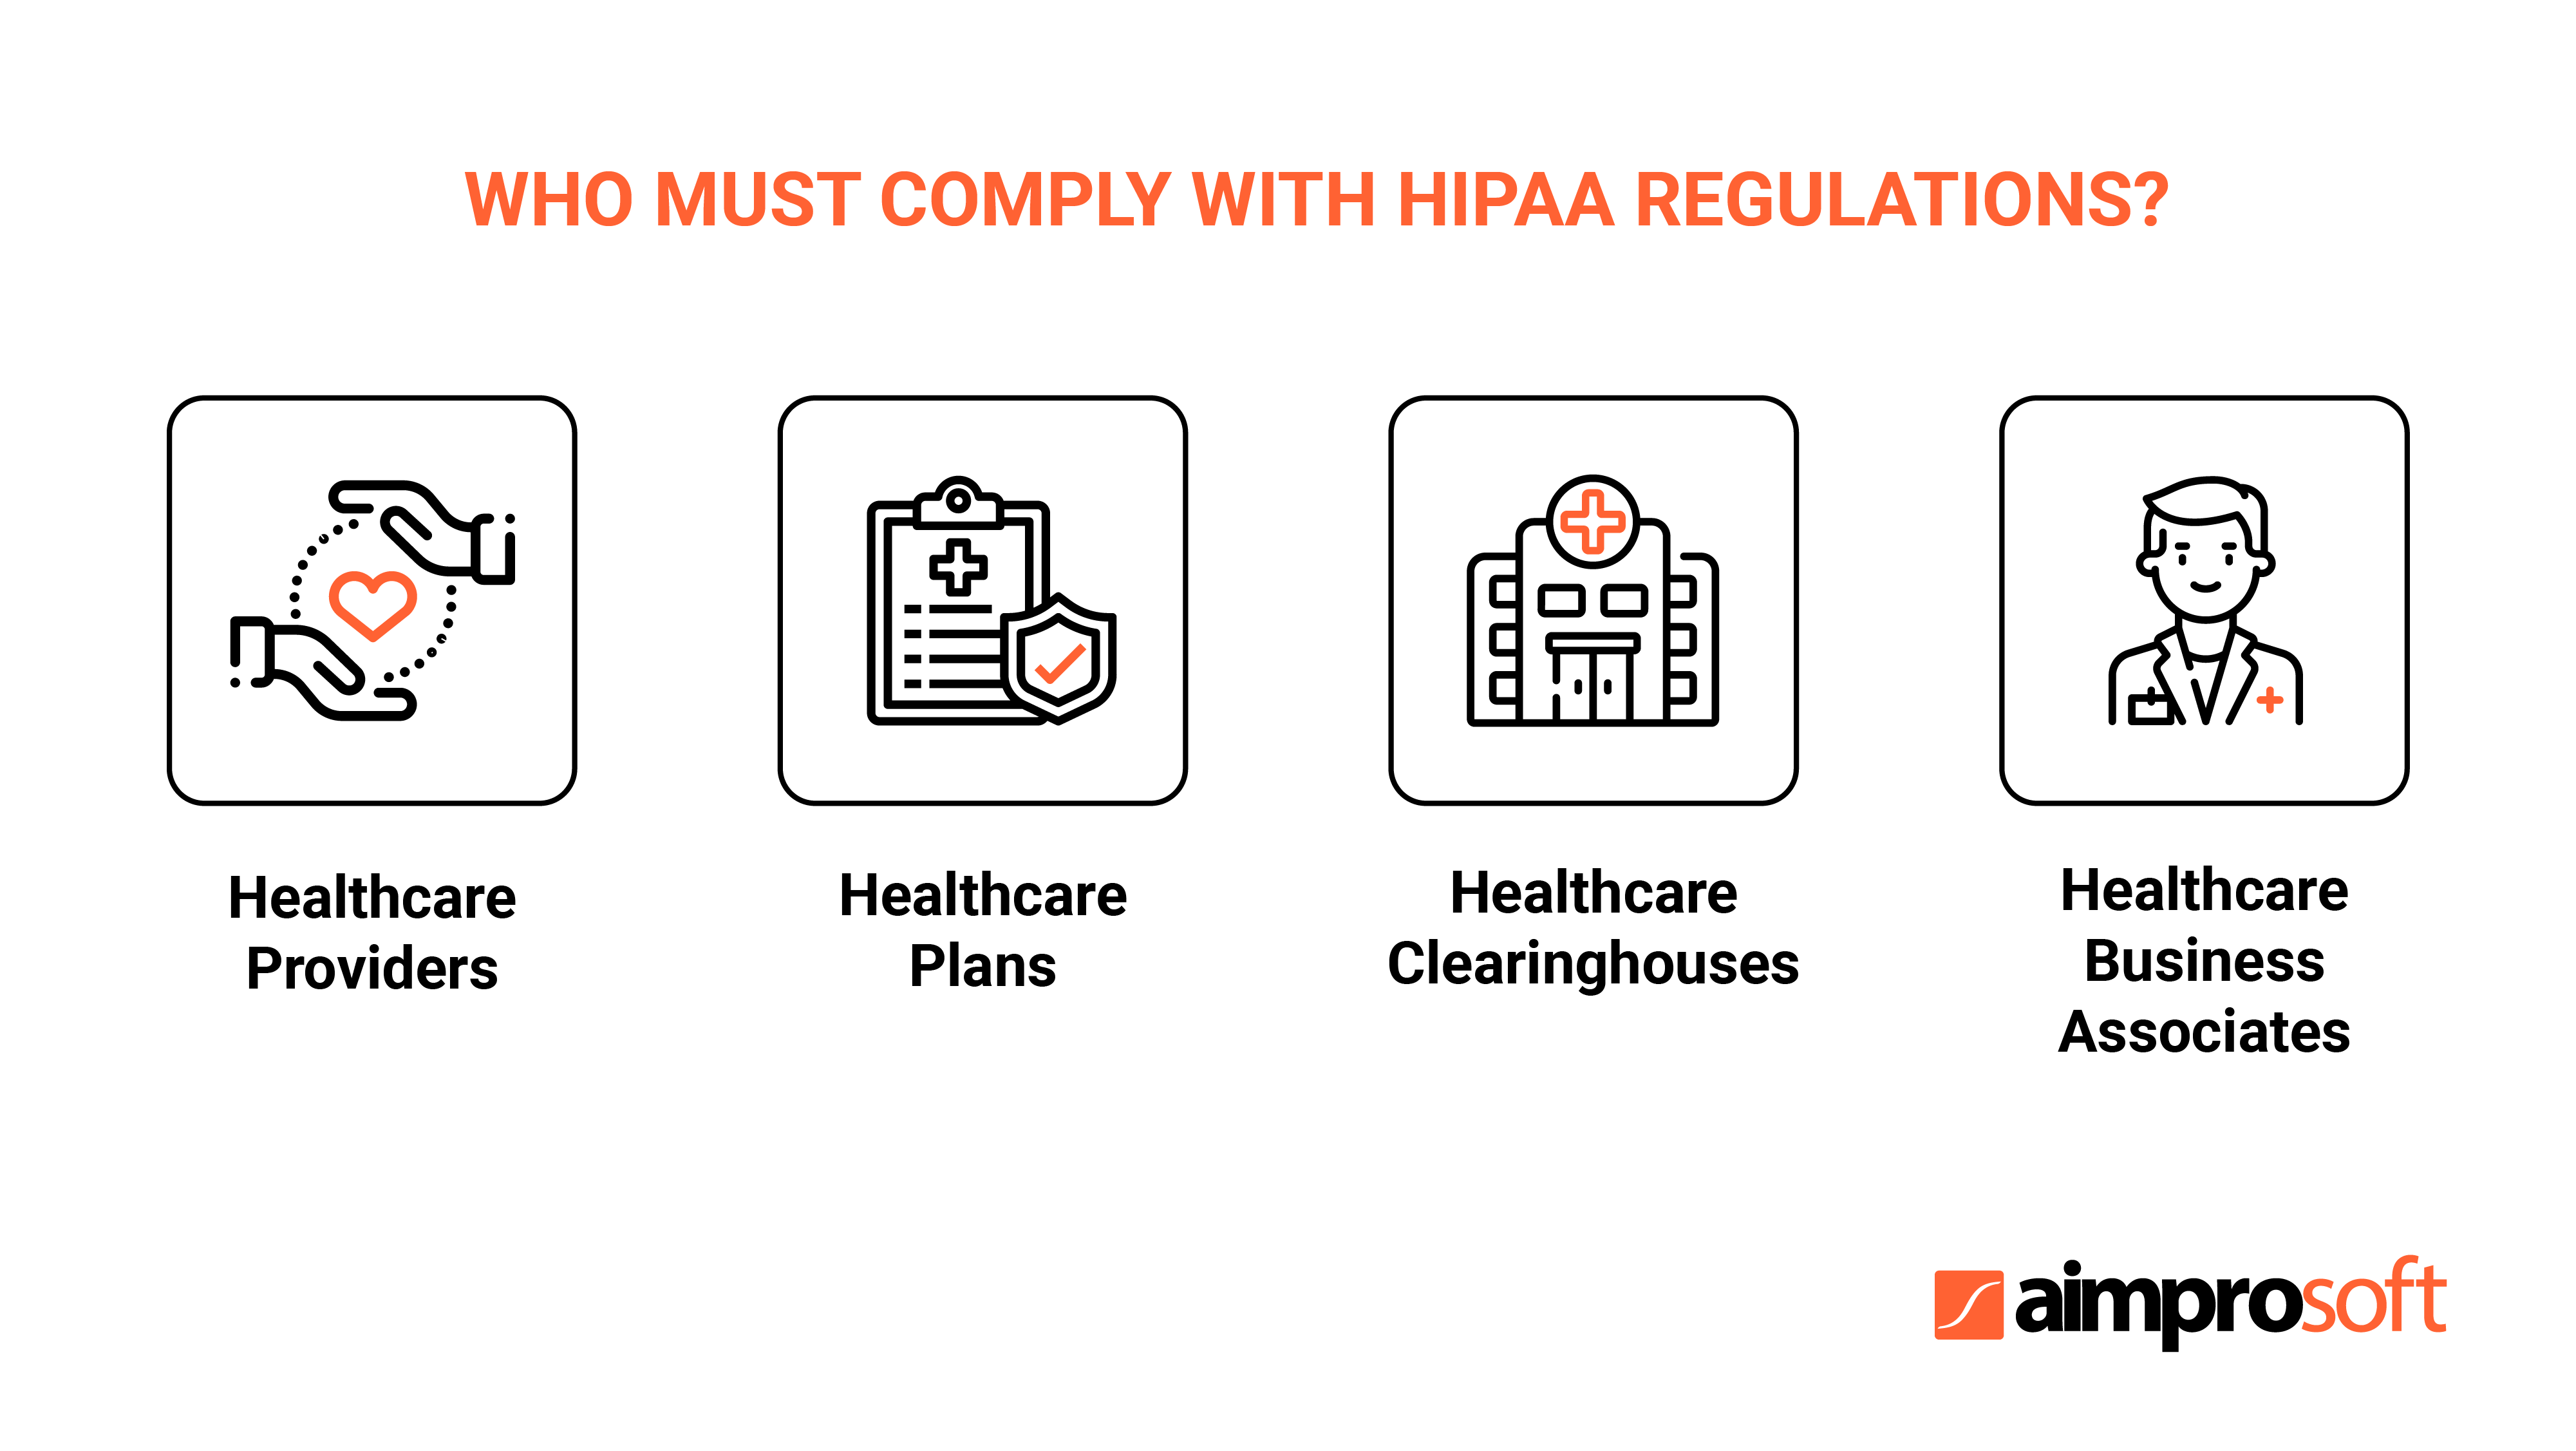 HIPAA compliant entities are divided into four categories